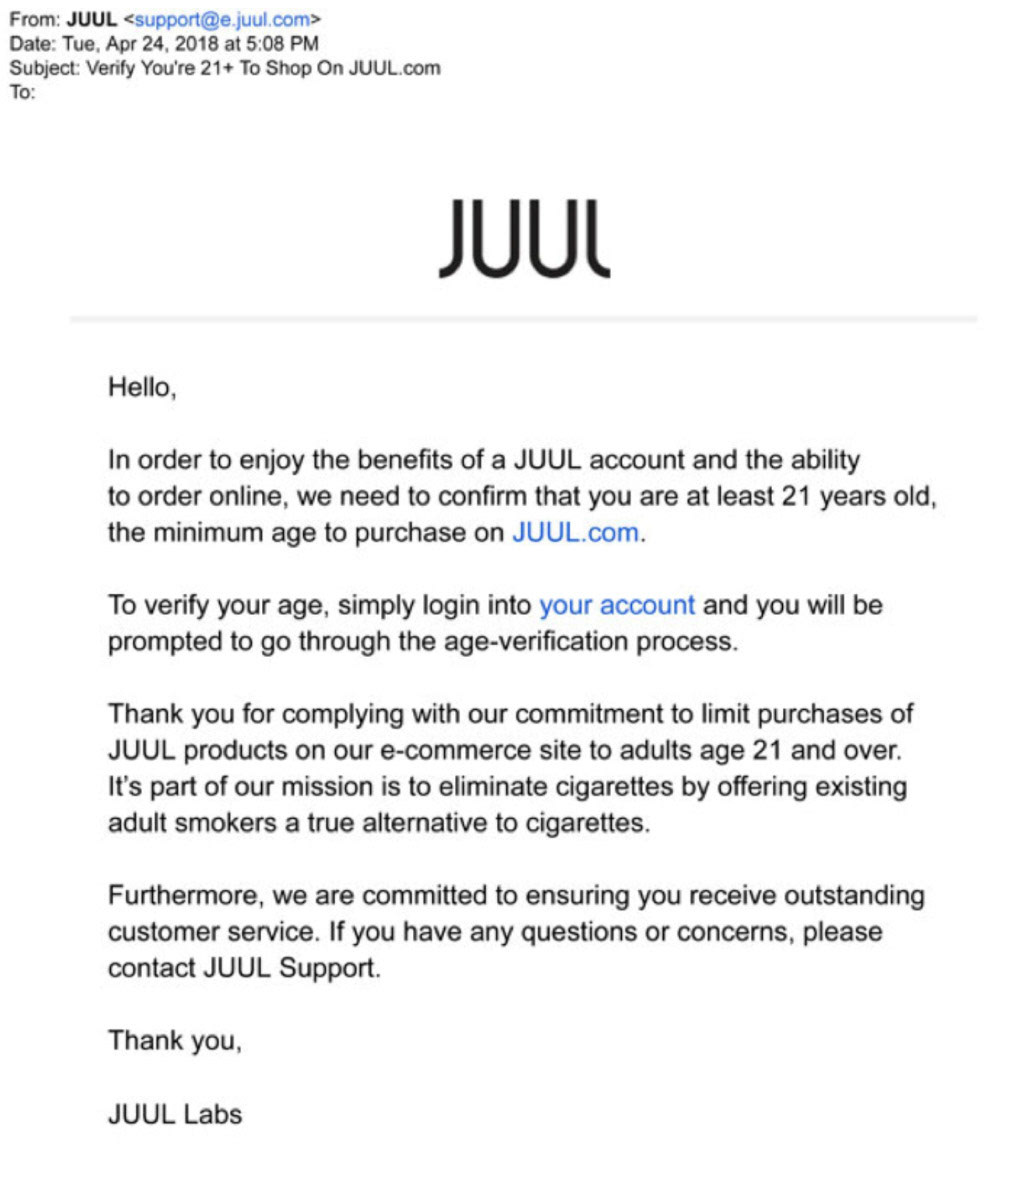 In re: JUUL Products Litigation - Company Messages